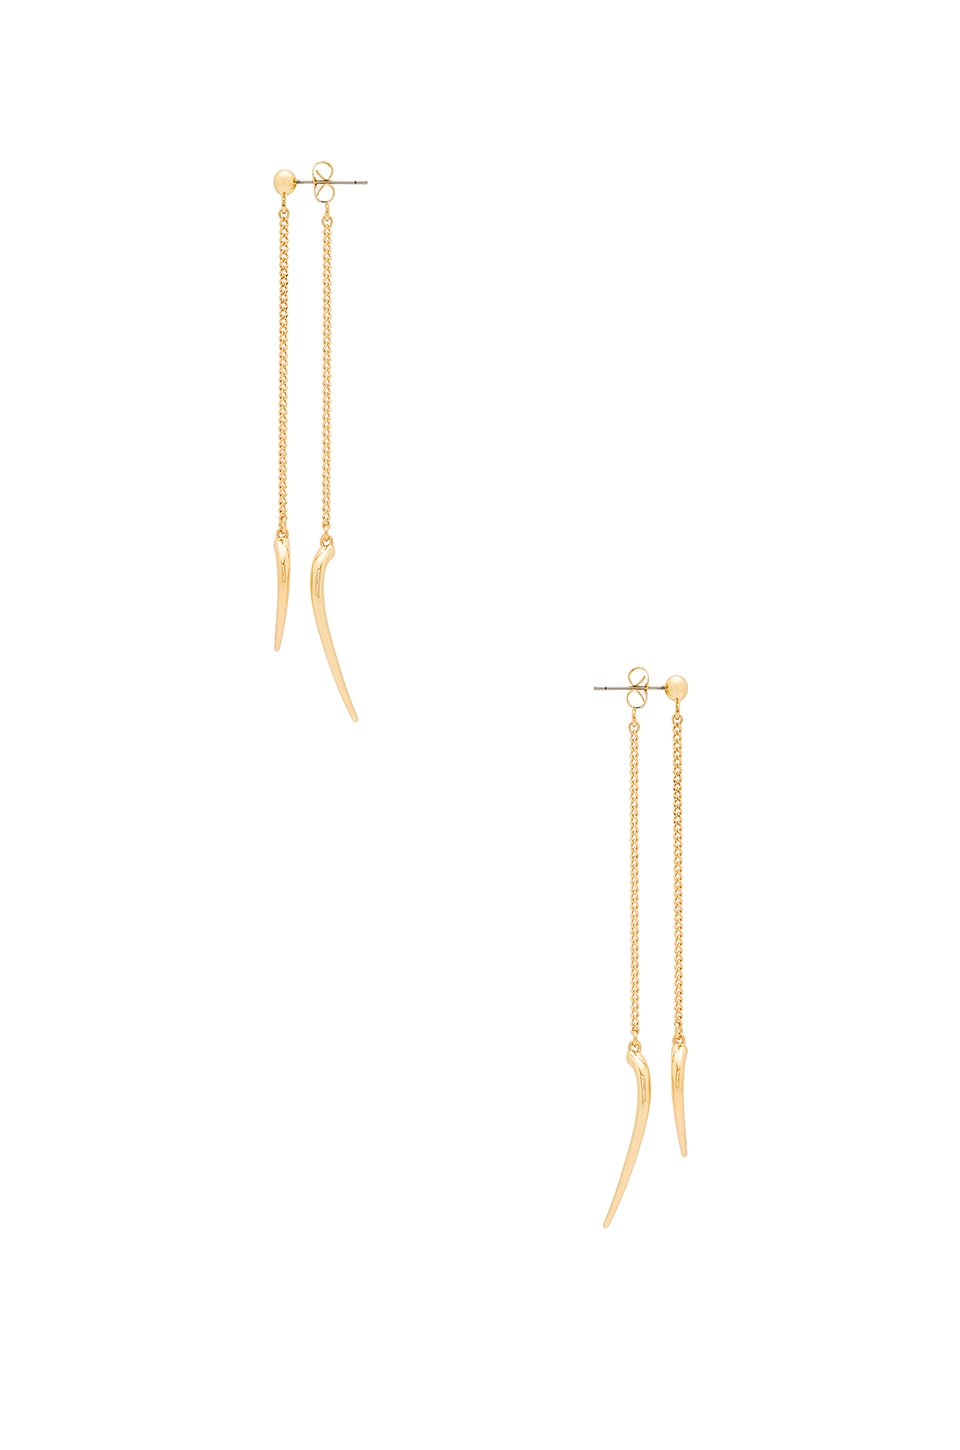 Double Talon Drop Earrings by Michelle Campbell